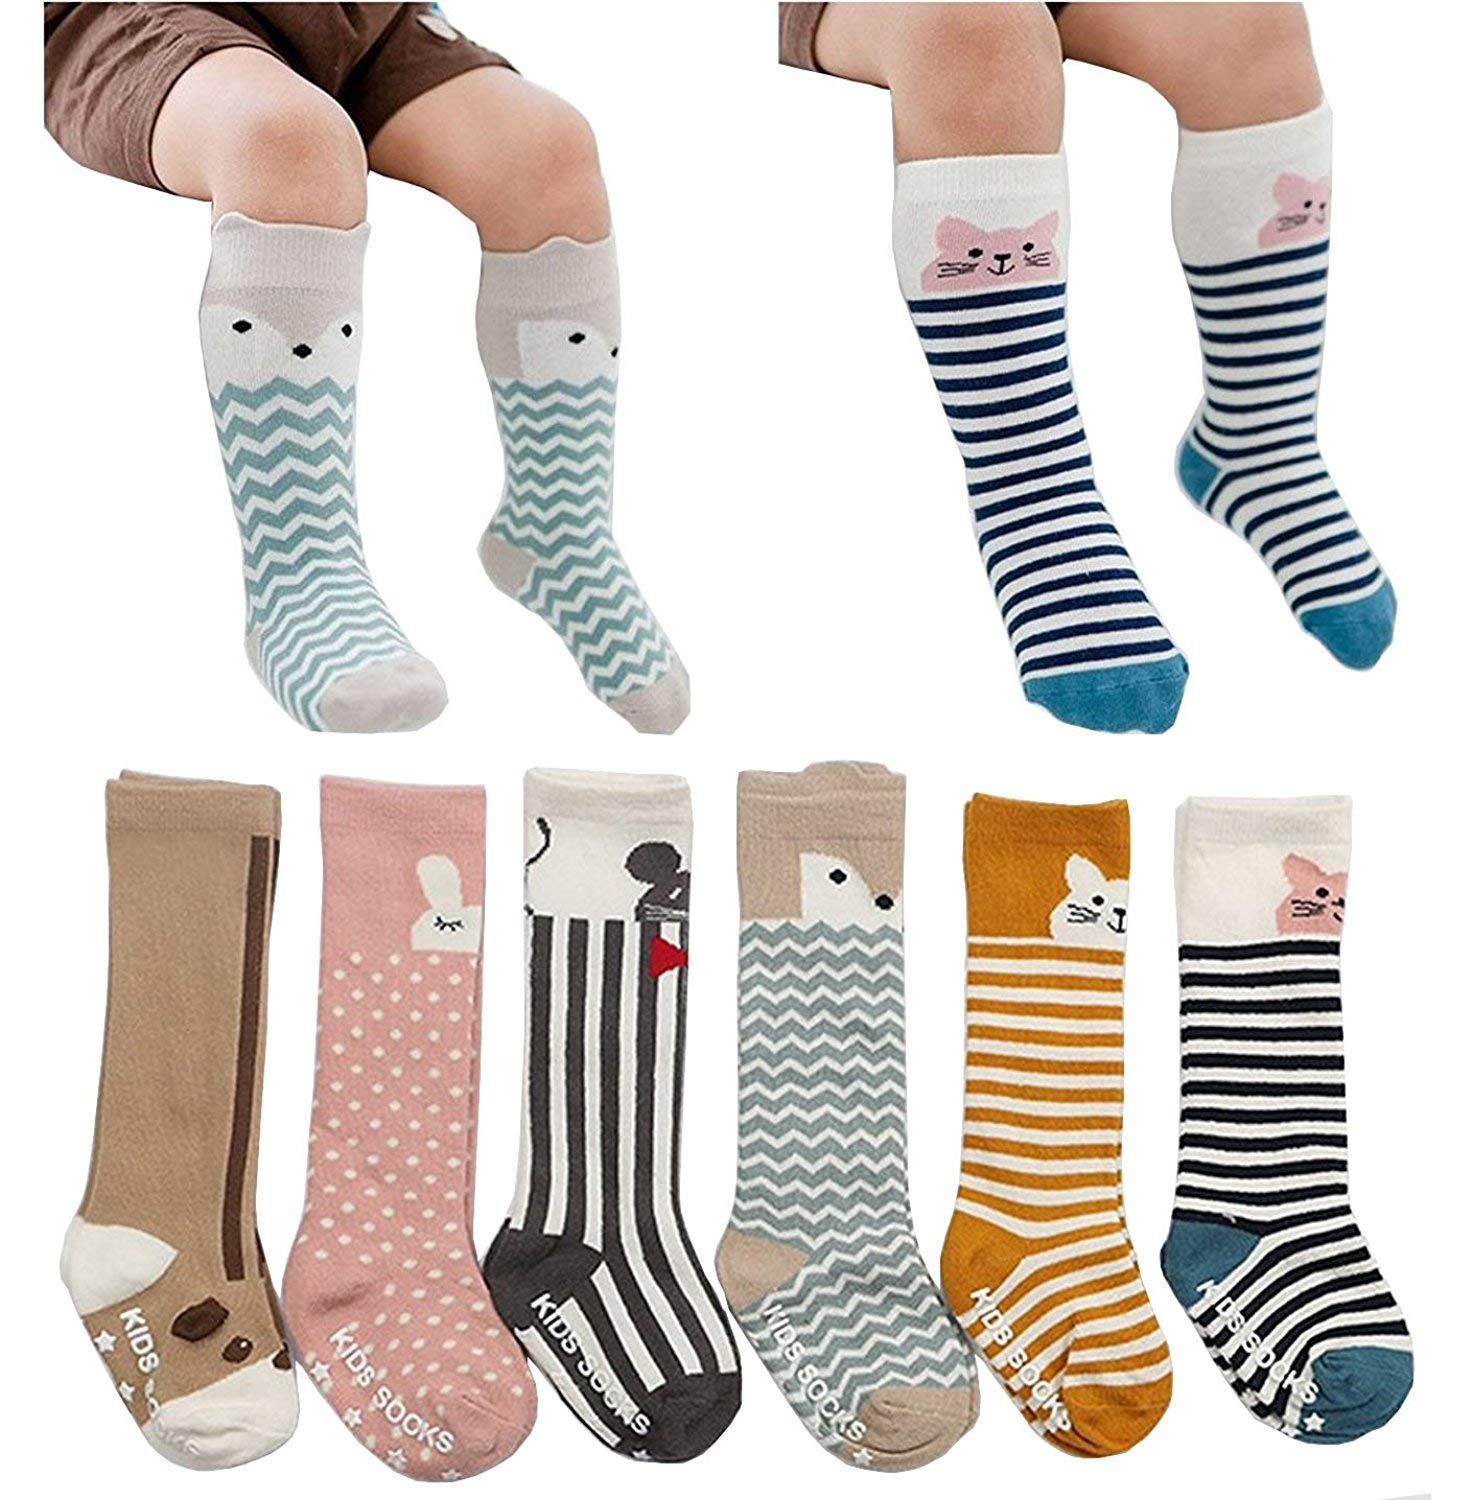 0c16cbe9c Get Quotations · 6 Pairs Toddler Socks